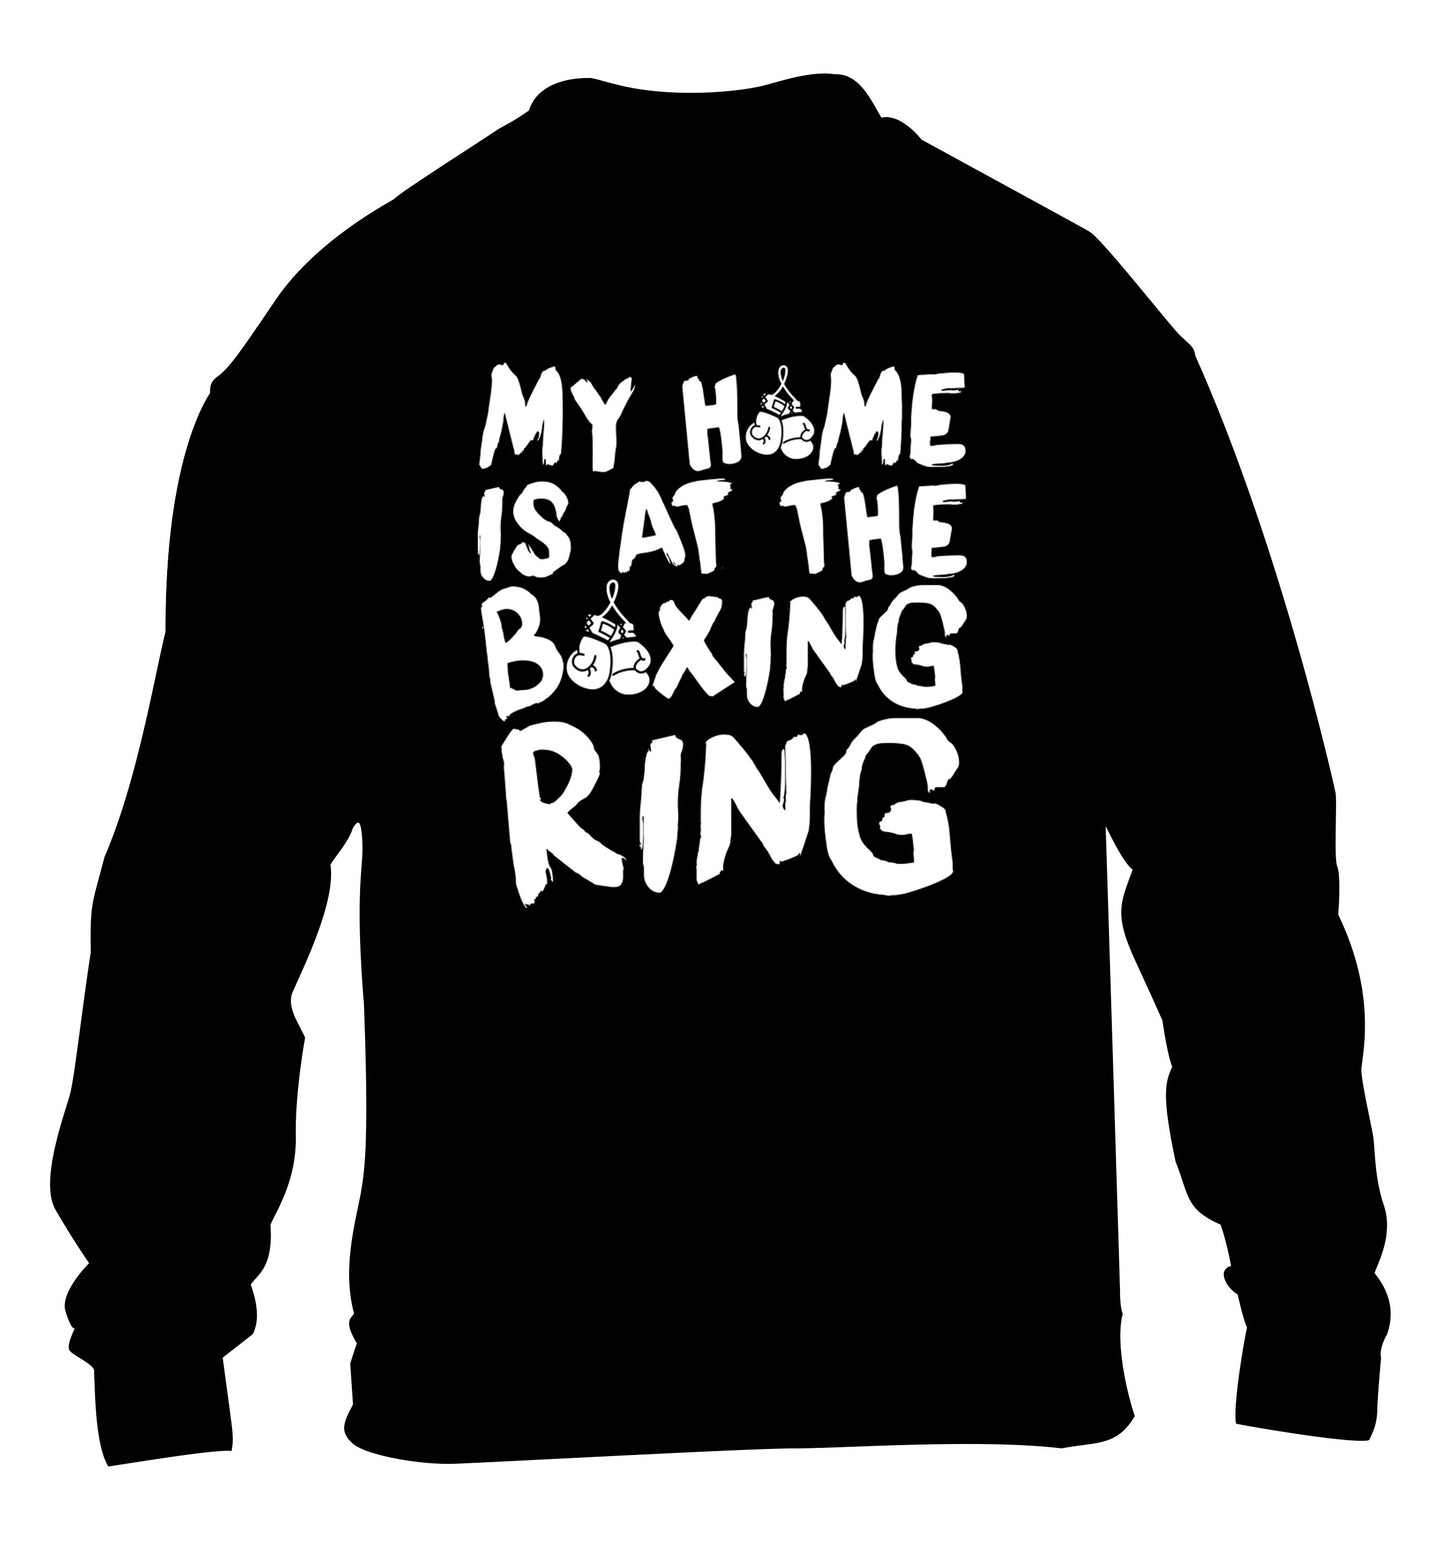 My home is at the boxing ring children's black sweater 12-14 Years